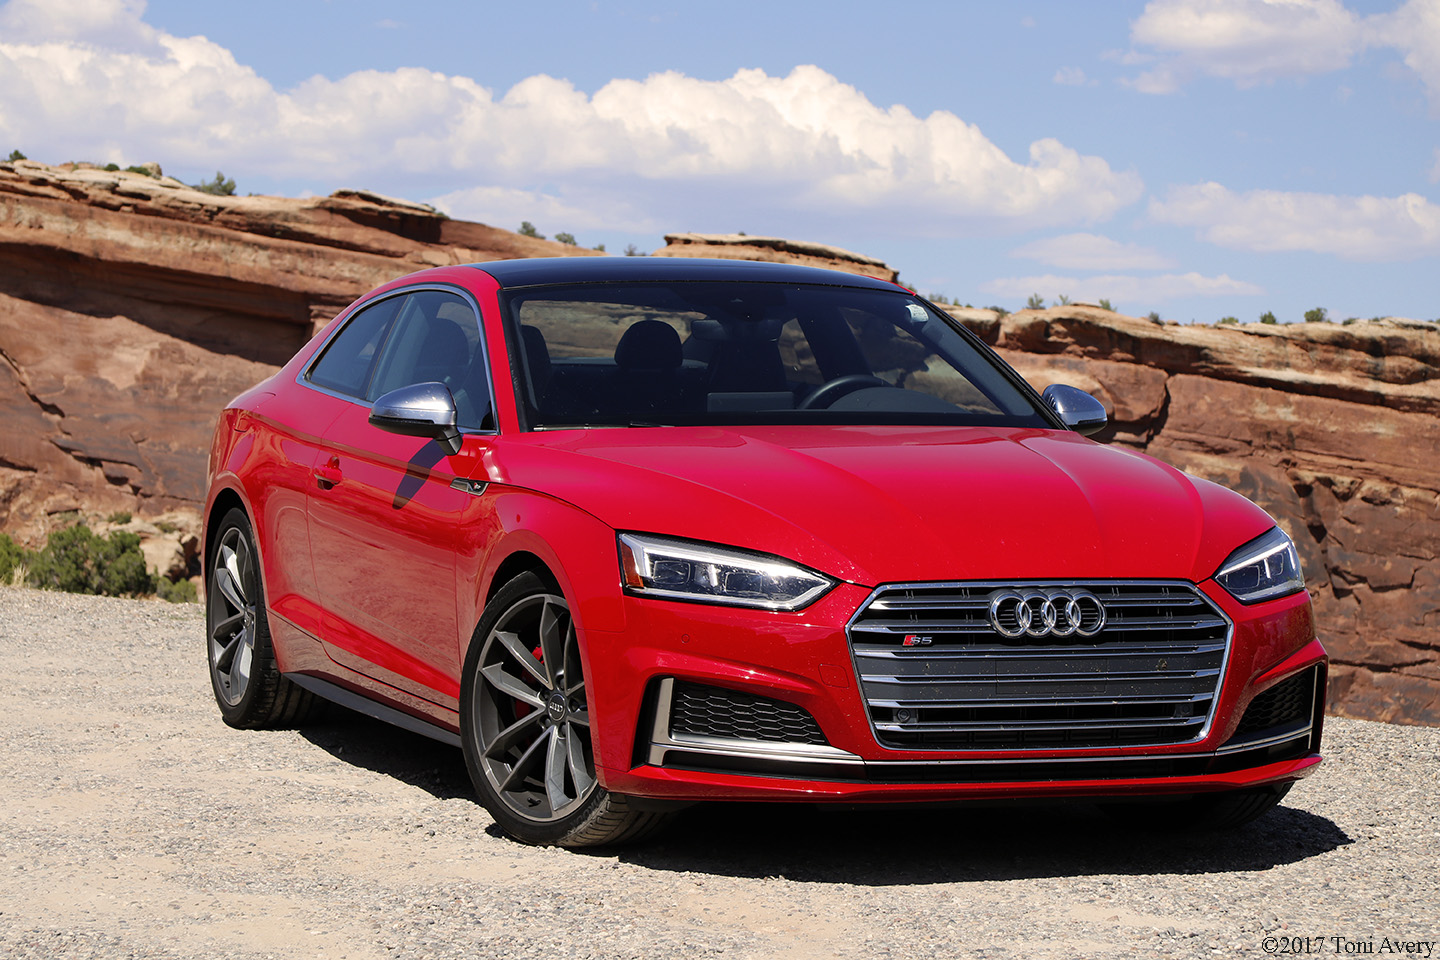 2018 Audi S5: Road trip to Colorado